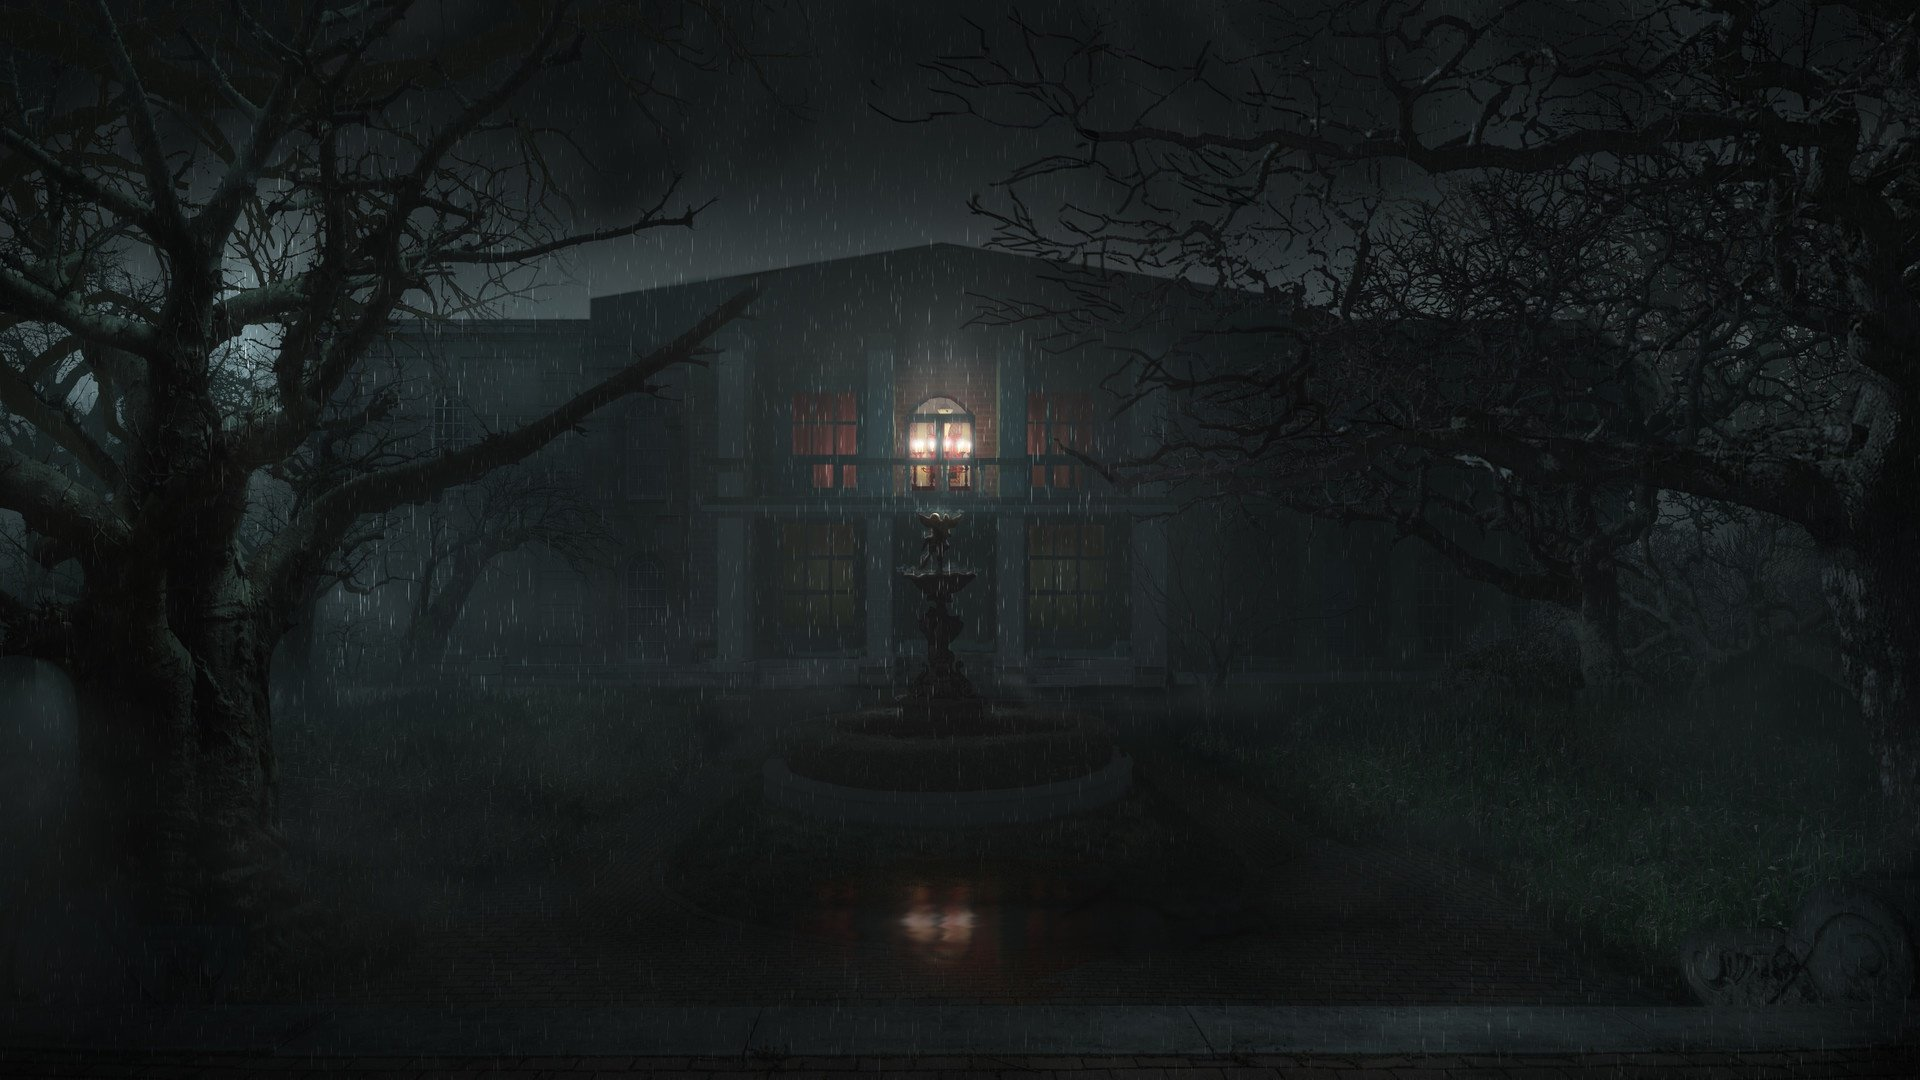 Monster Dark House Wallpapers 1920x1080 Full Hd 1080p